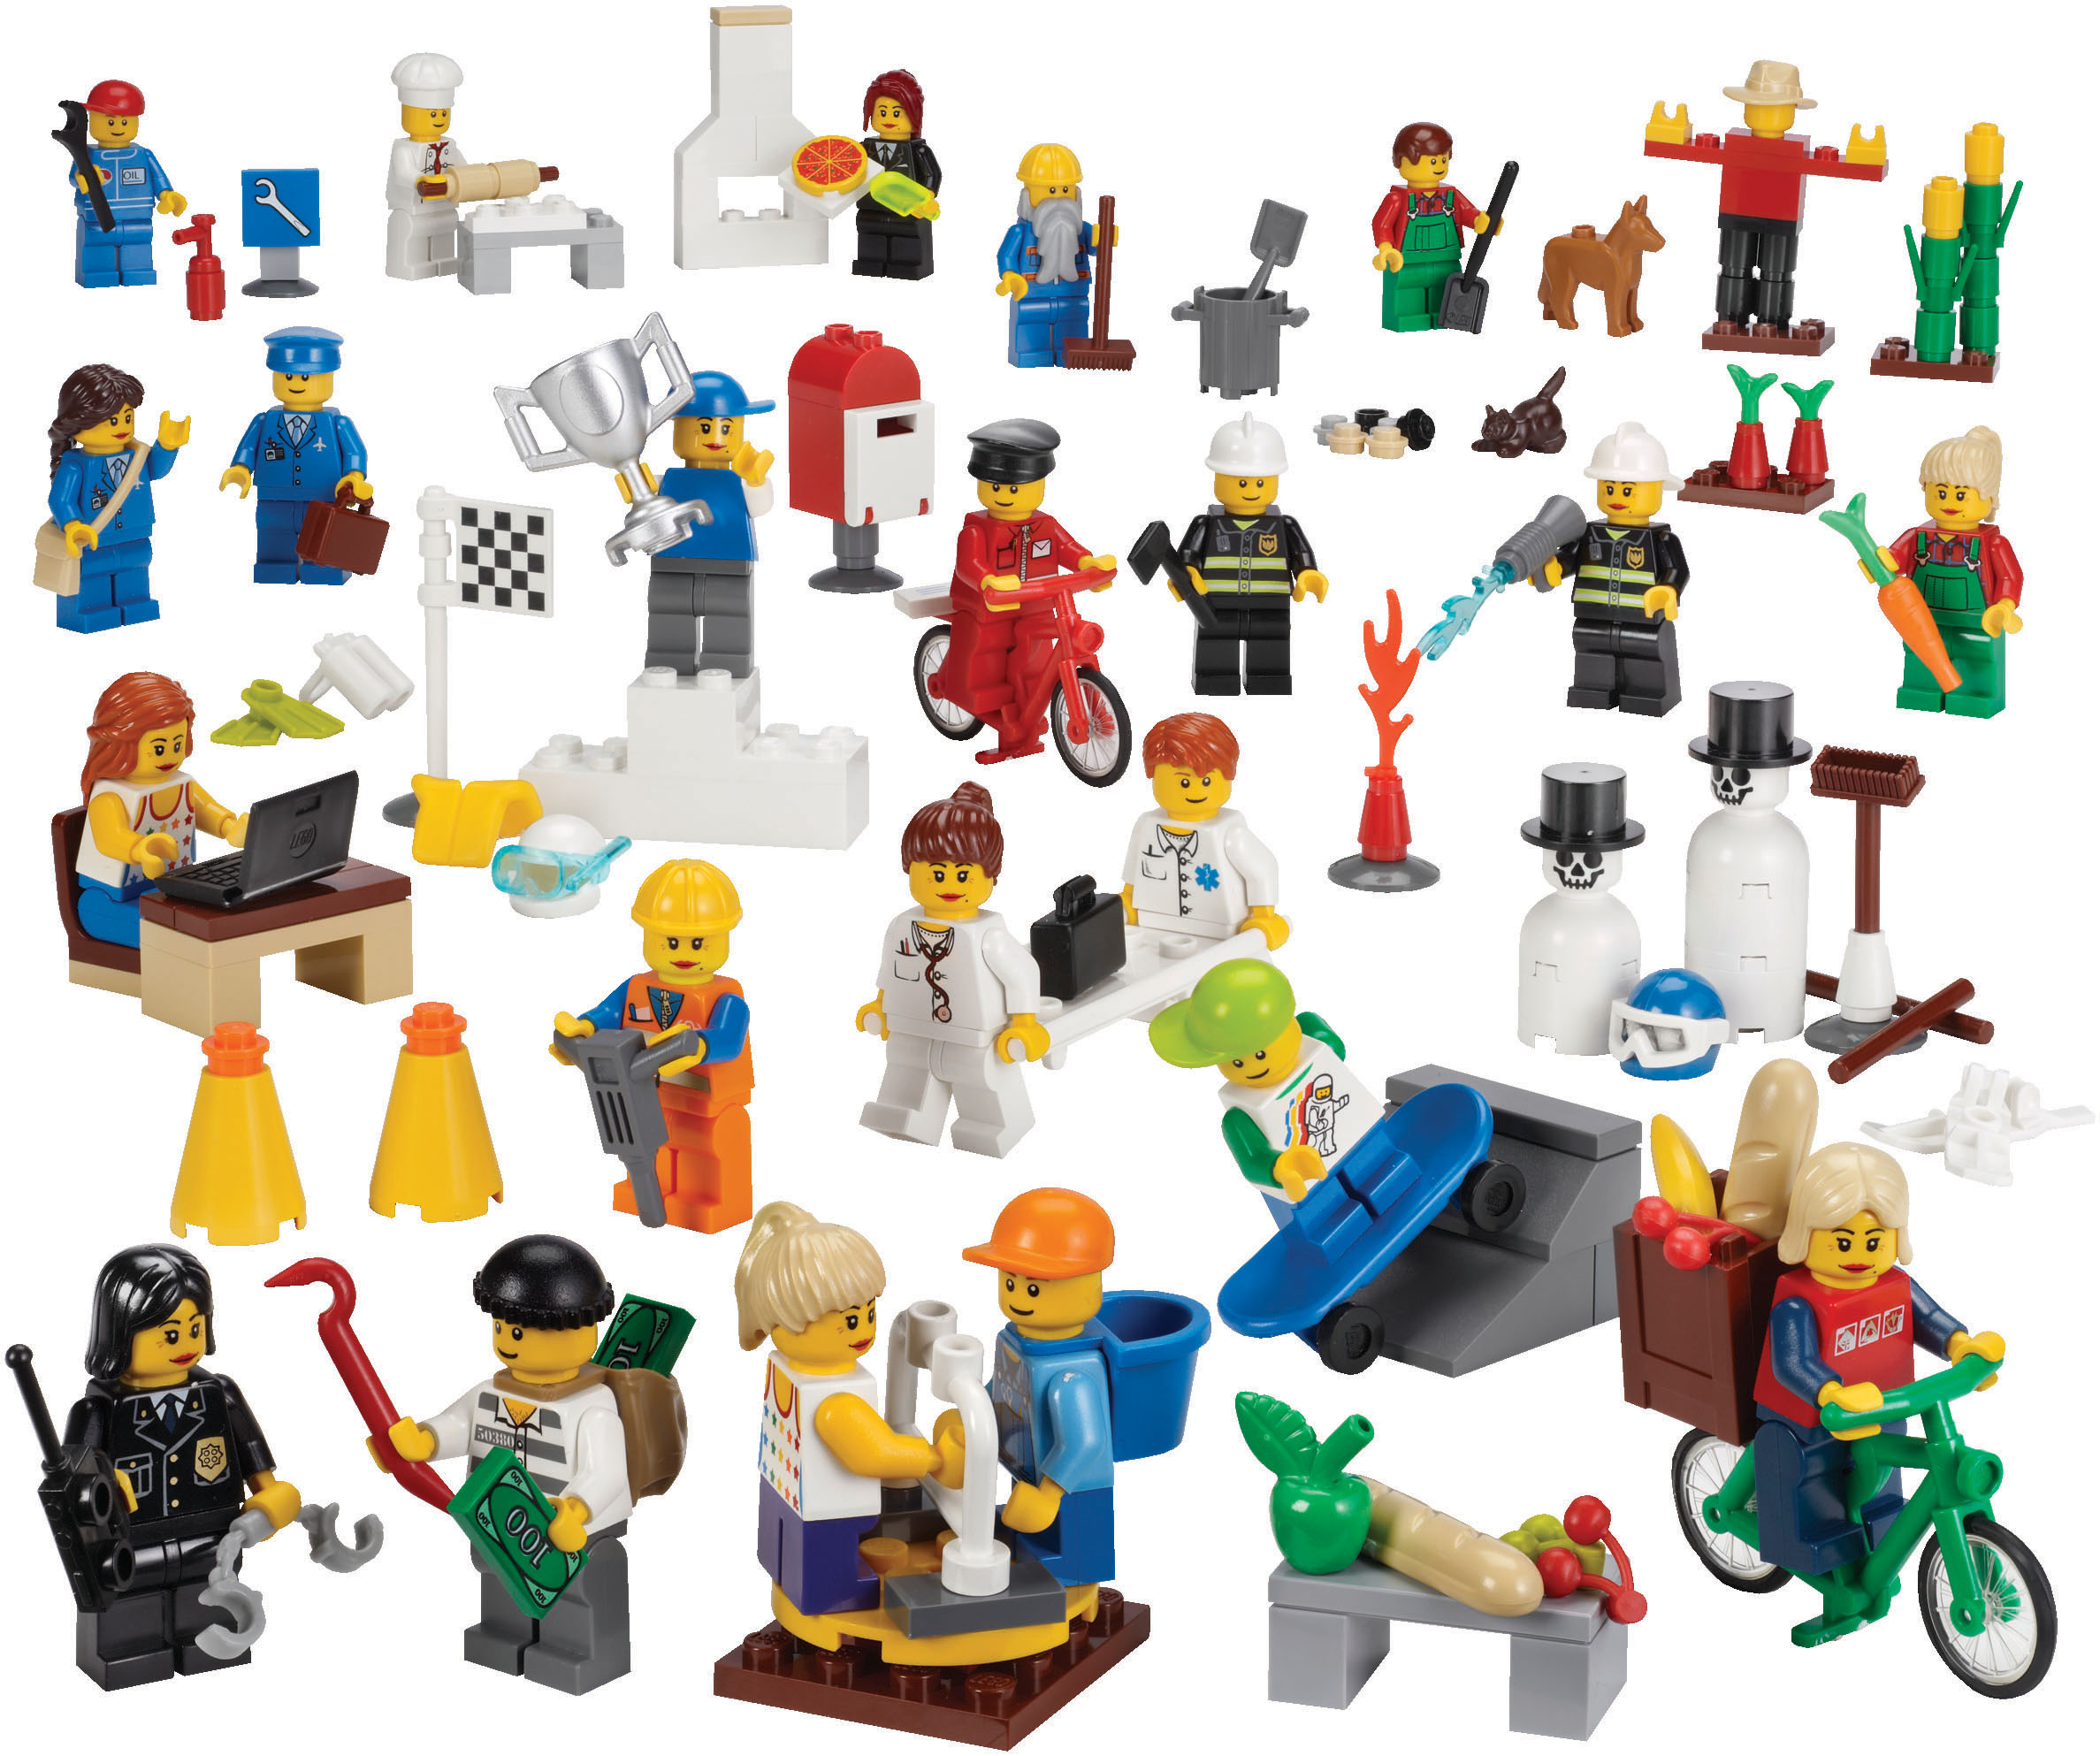 Lego Figure Pictures